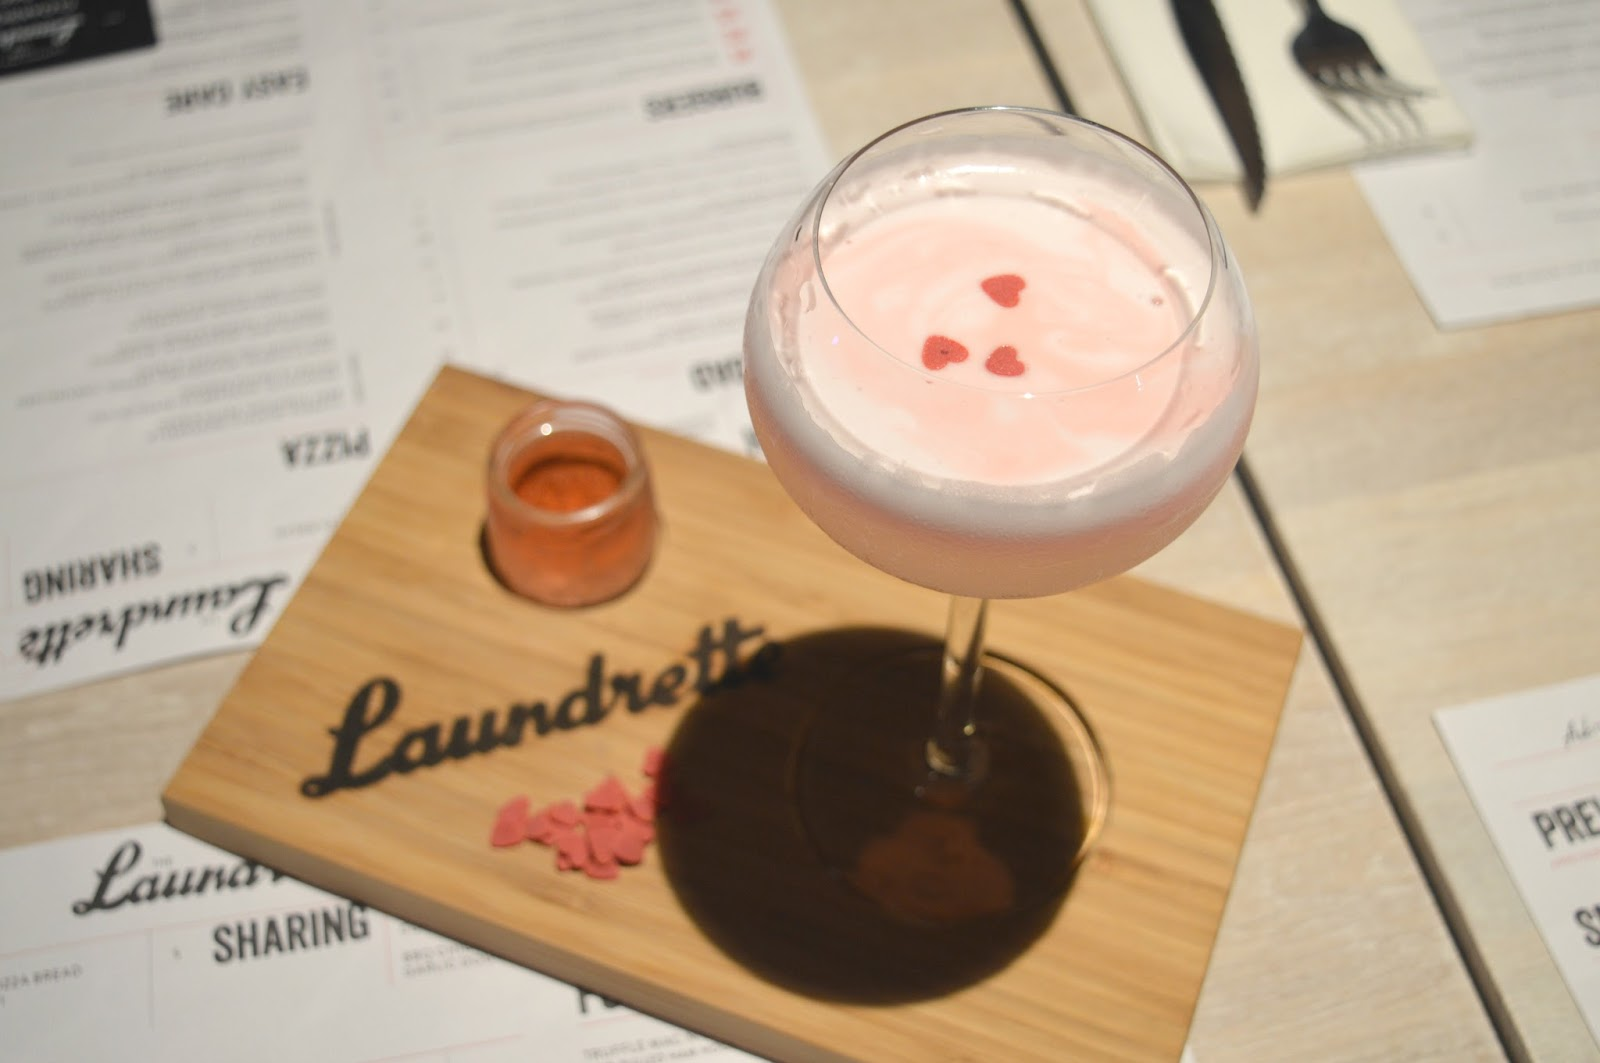 The Laundrette, Newcastle - The Laundrette with Love